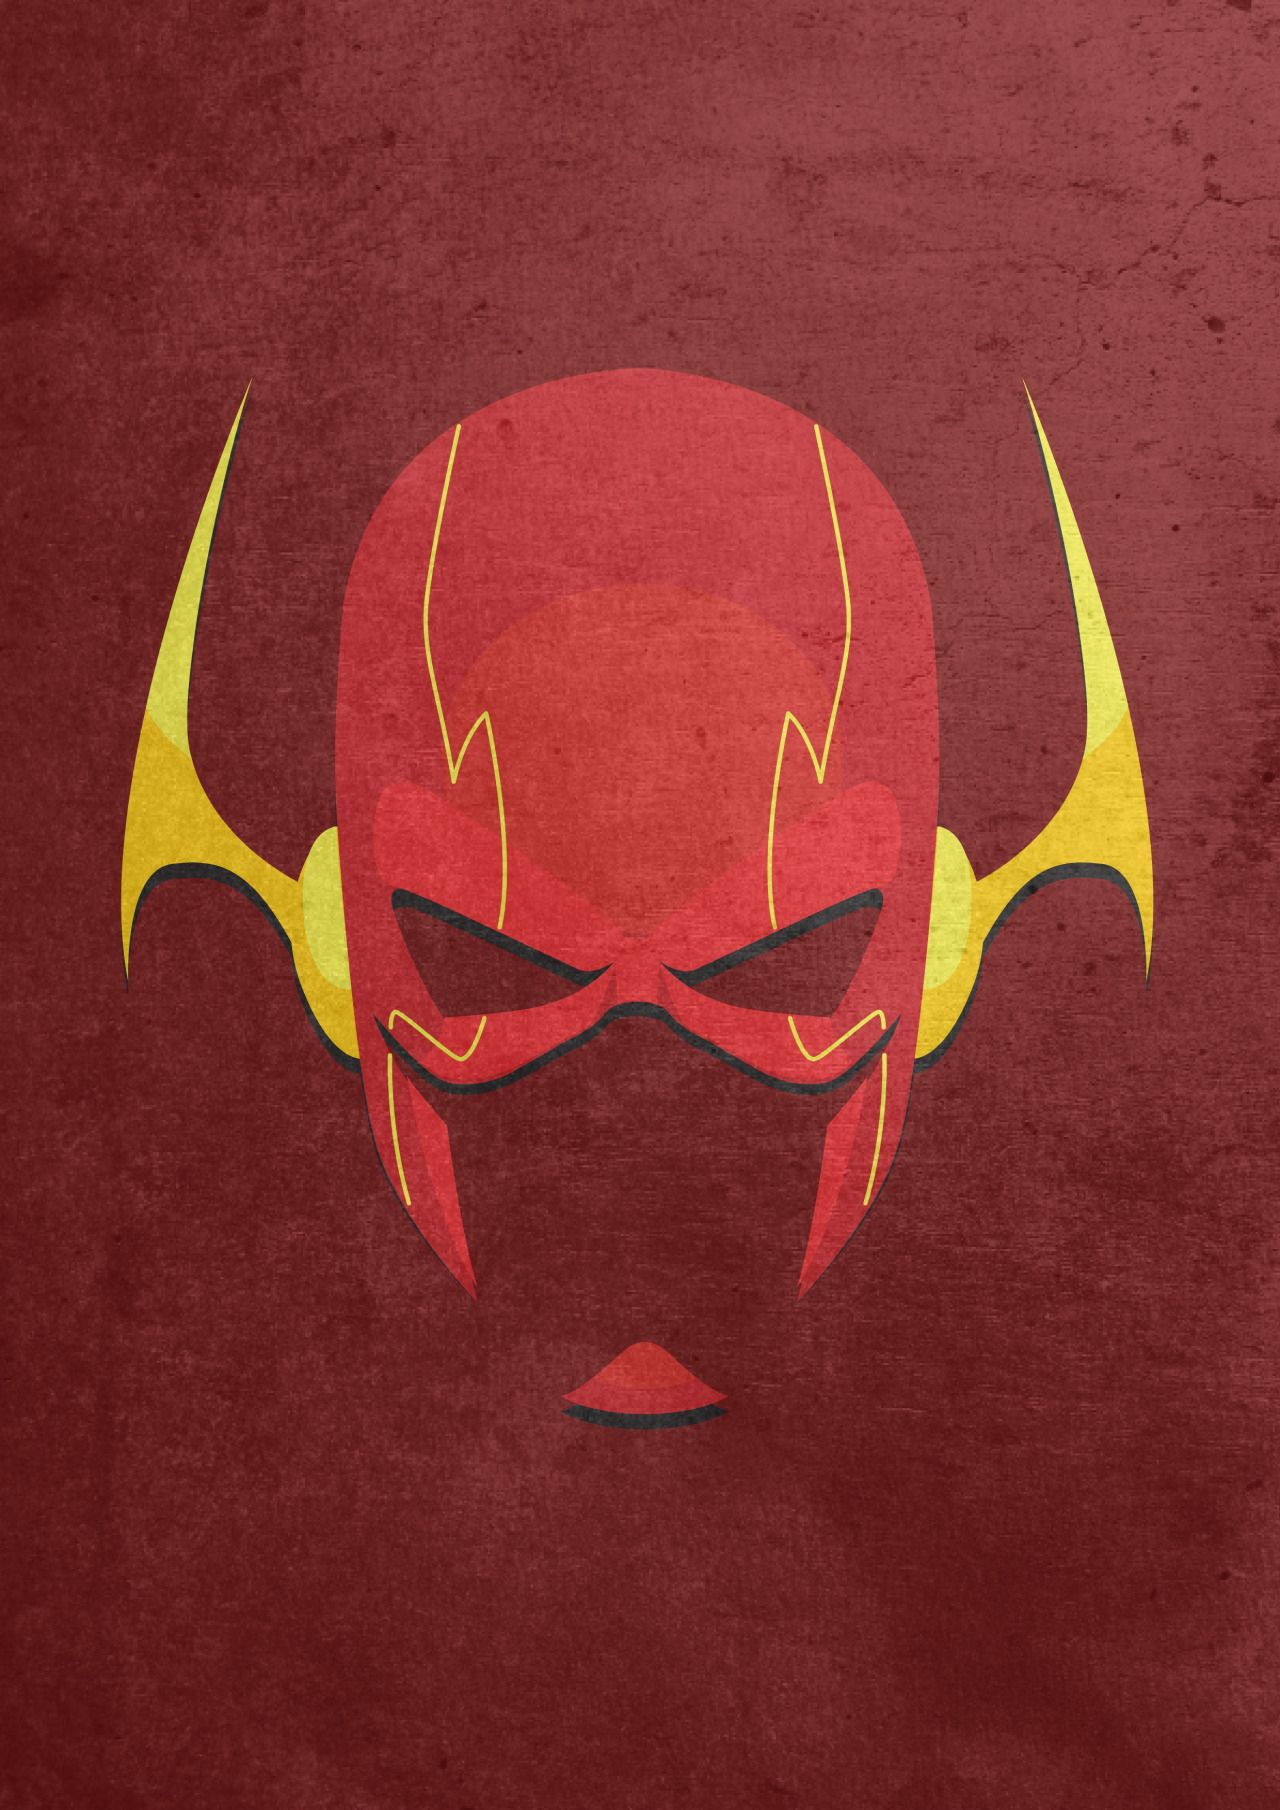 Justice League The Flash Wallpaper Mobile By Darkfailure On DeviantArt Wallpapers